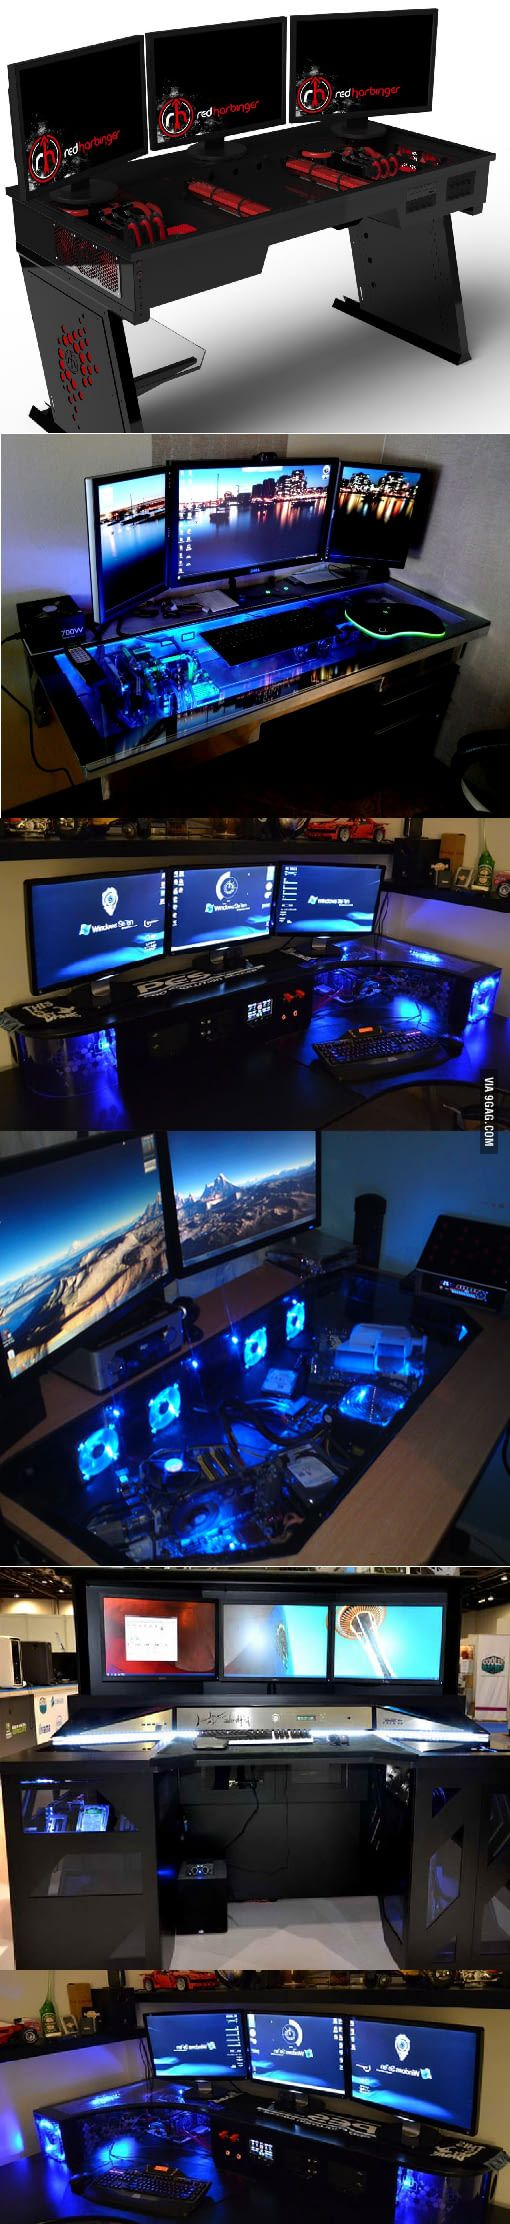 Brother agreed to build epic gaming desk if I get a post to the hotpage, gamers unite, request backup, need upvote drop!